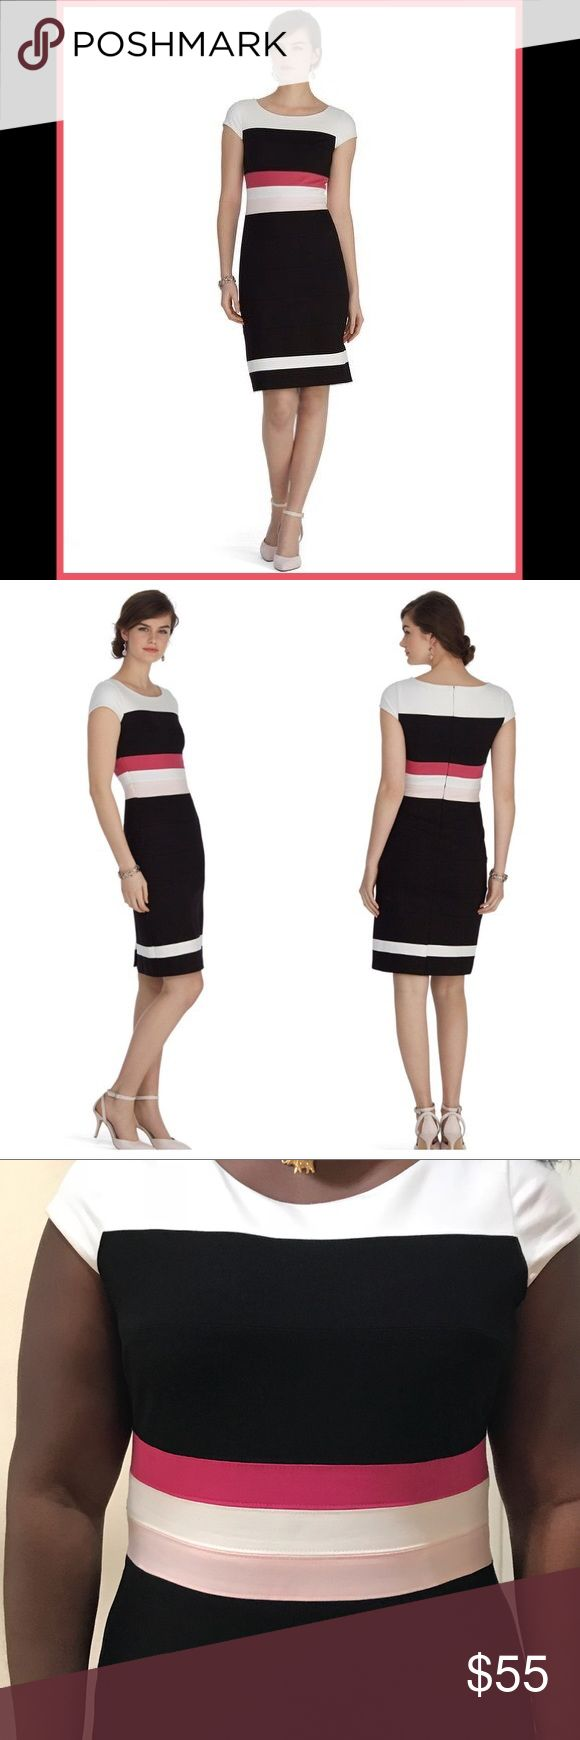 """White House Black Market Colorblock Dress Size 12 Banded colorblocks highlight for a curve compliment in pops of pink along the waistline of this cap sleeve dress with stunning sheath silhouette. Cap sleeves. Invisible back zip with hook and eye closure. Fully lined. 70% viscose, 25% polyamide, 5% elastane. Lining: 92% polyester, 8% spandex. Machine wash, cold. Imported. Approximately 38.5"""" in length from shoulder. Size 12. Gently worn. White House Black Market Dresses"""